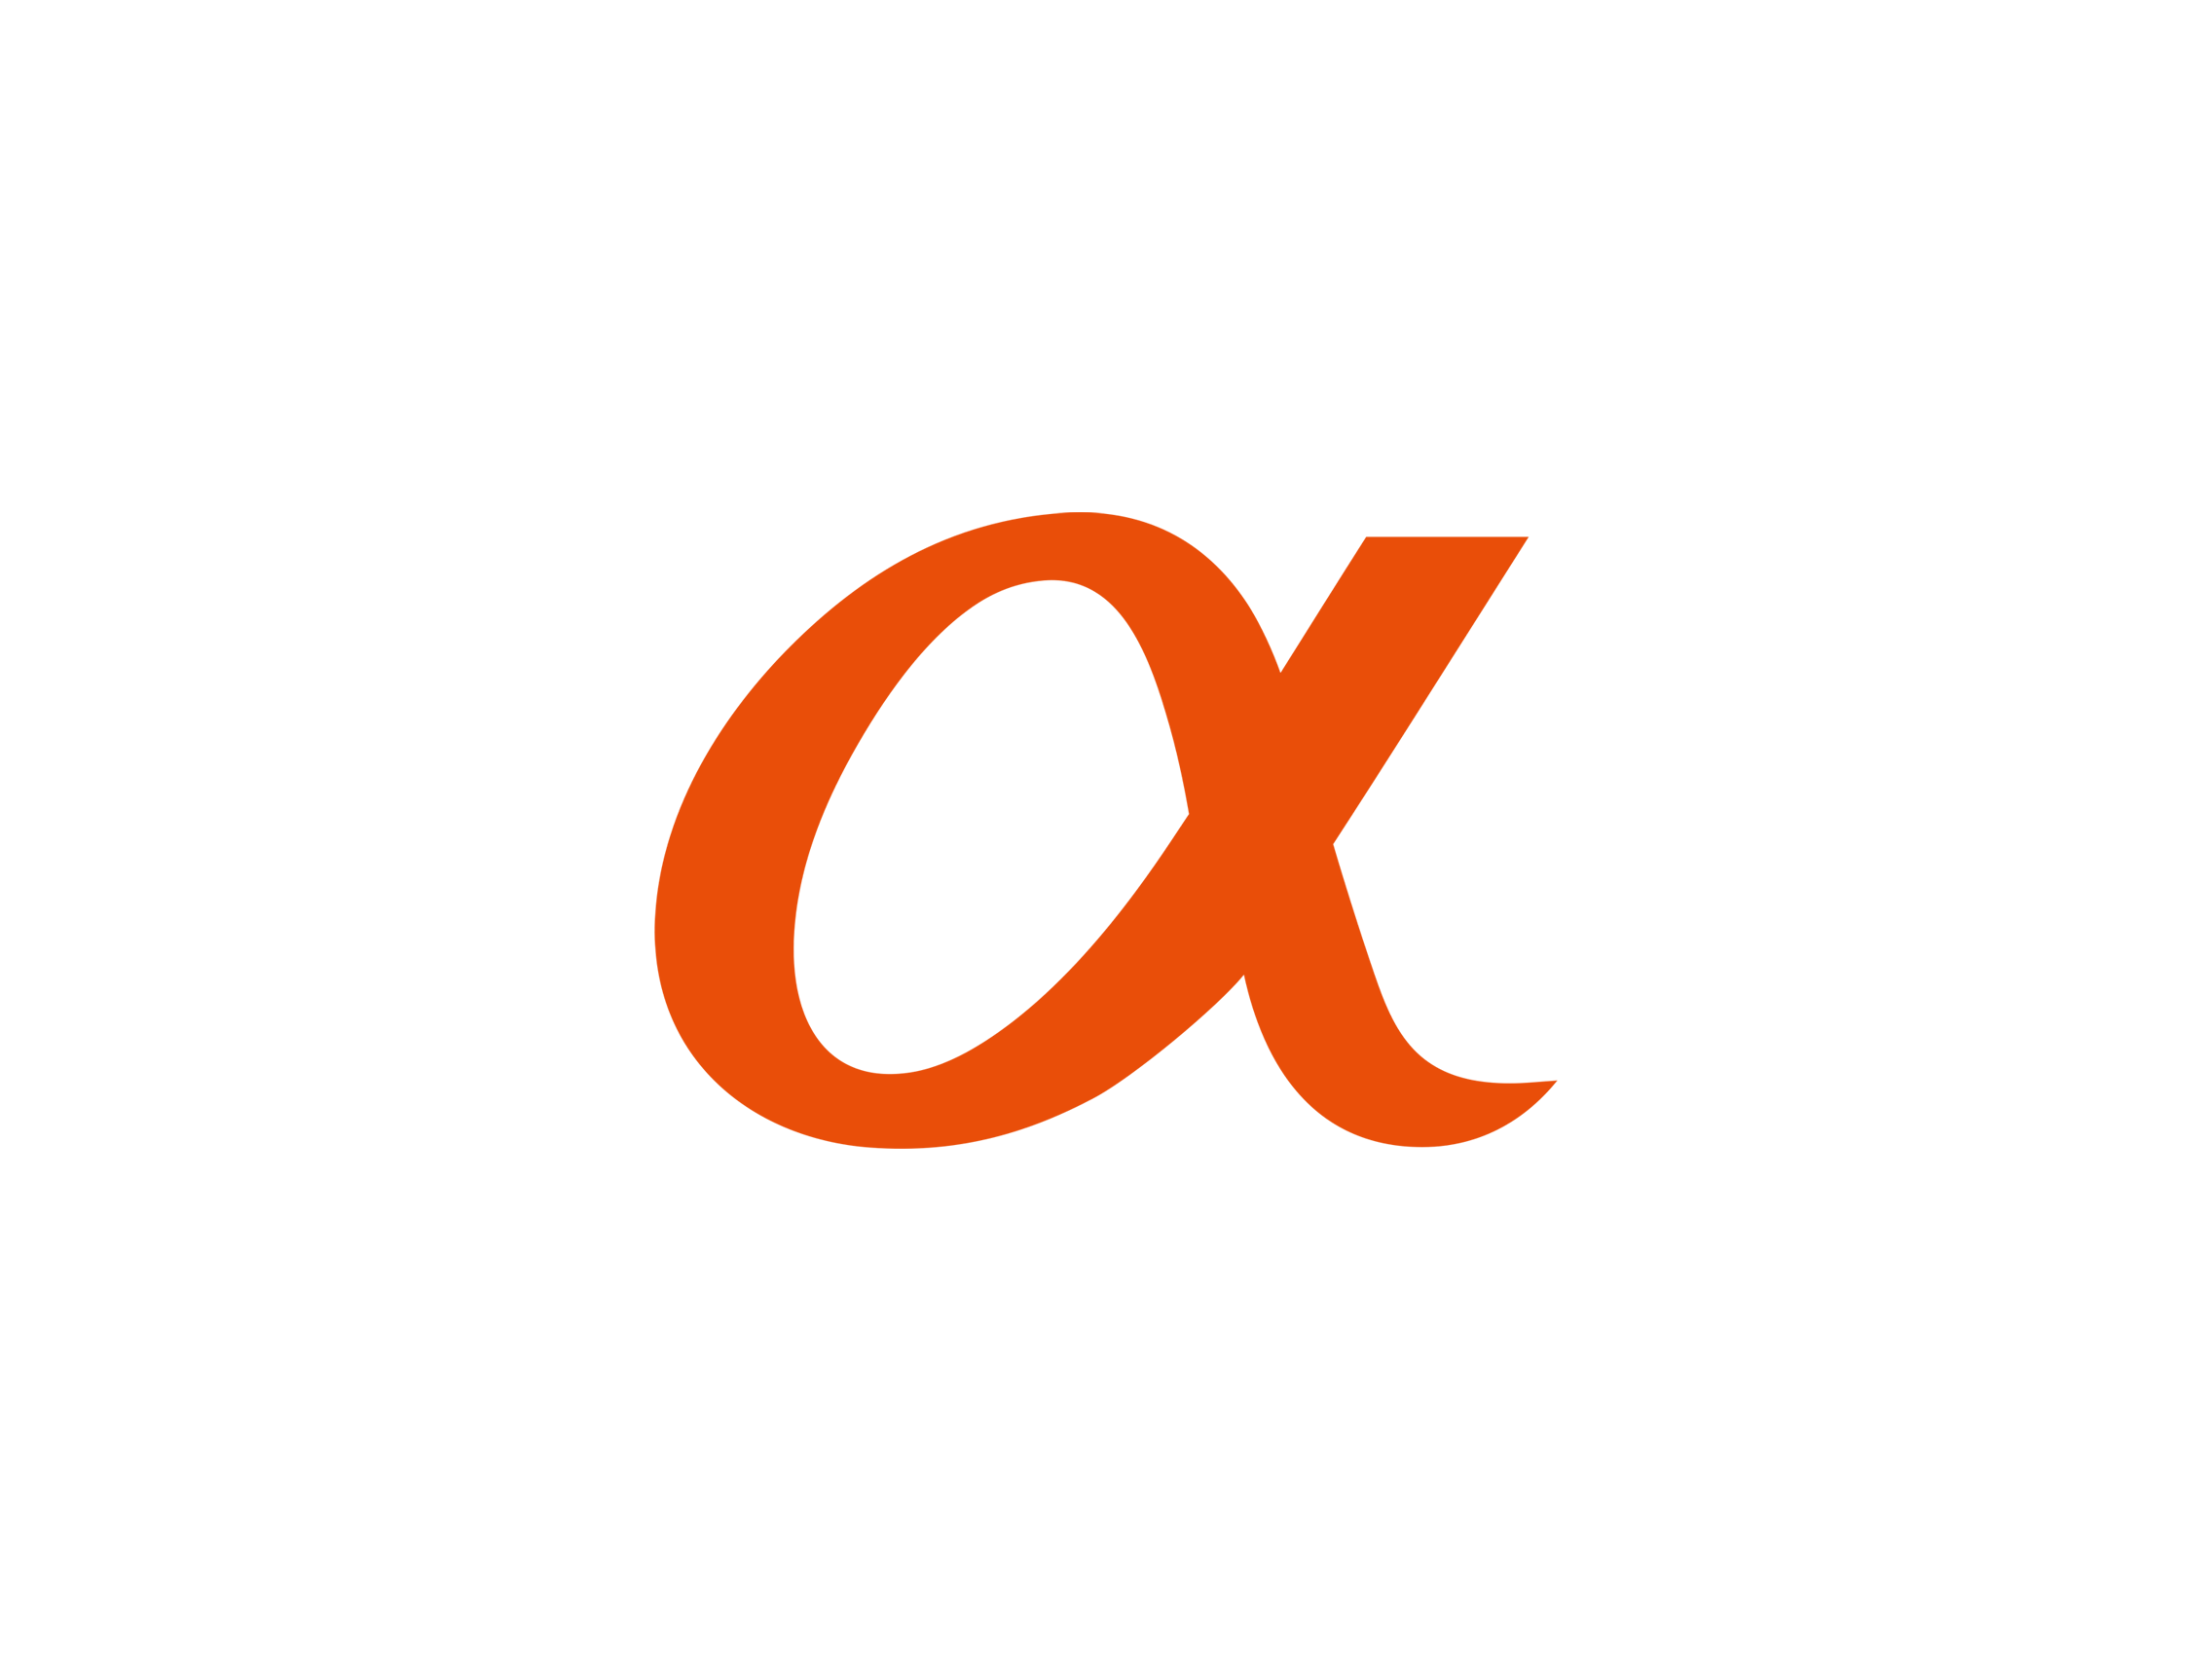 orange sony png logo